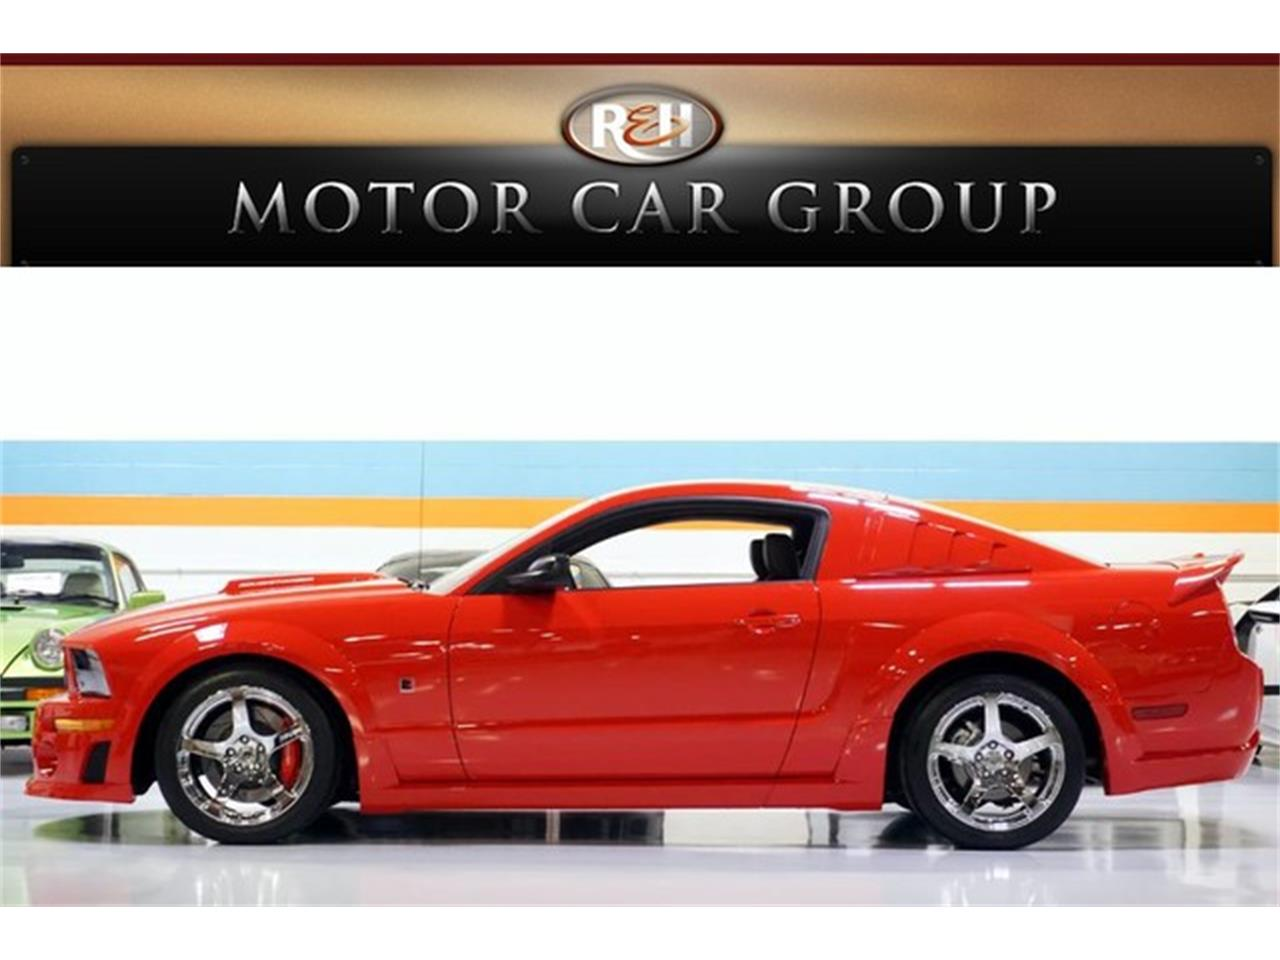 For Sale: 2006 Ford Mustang Roush Stage 3 in Solon, Ohio